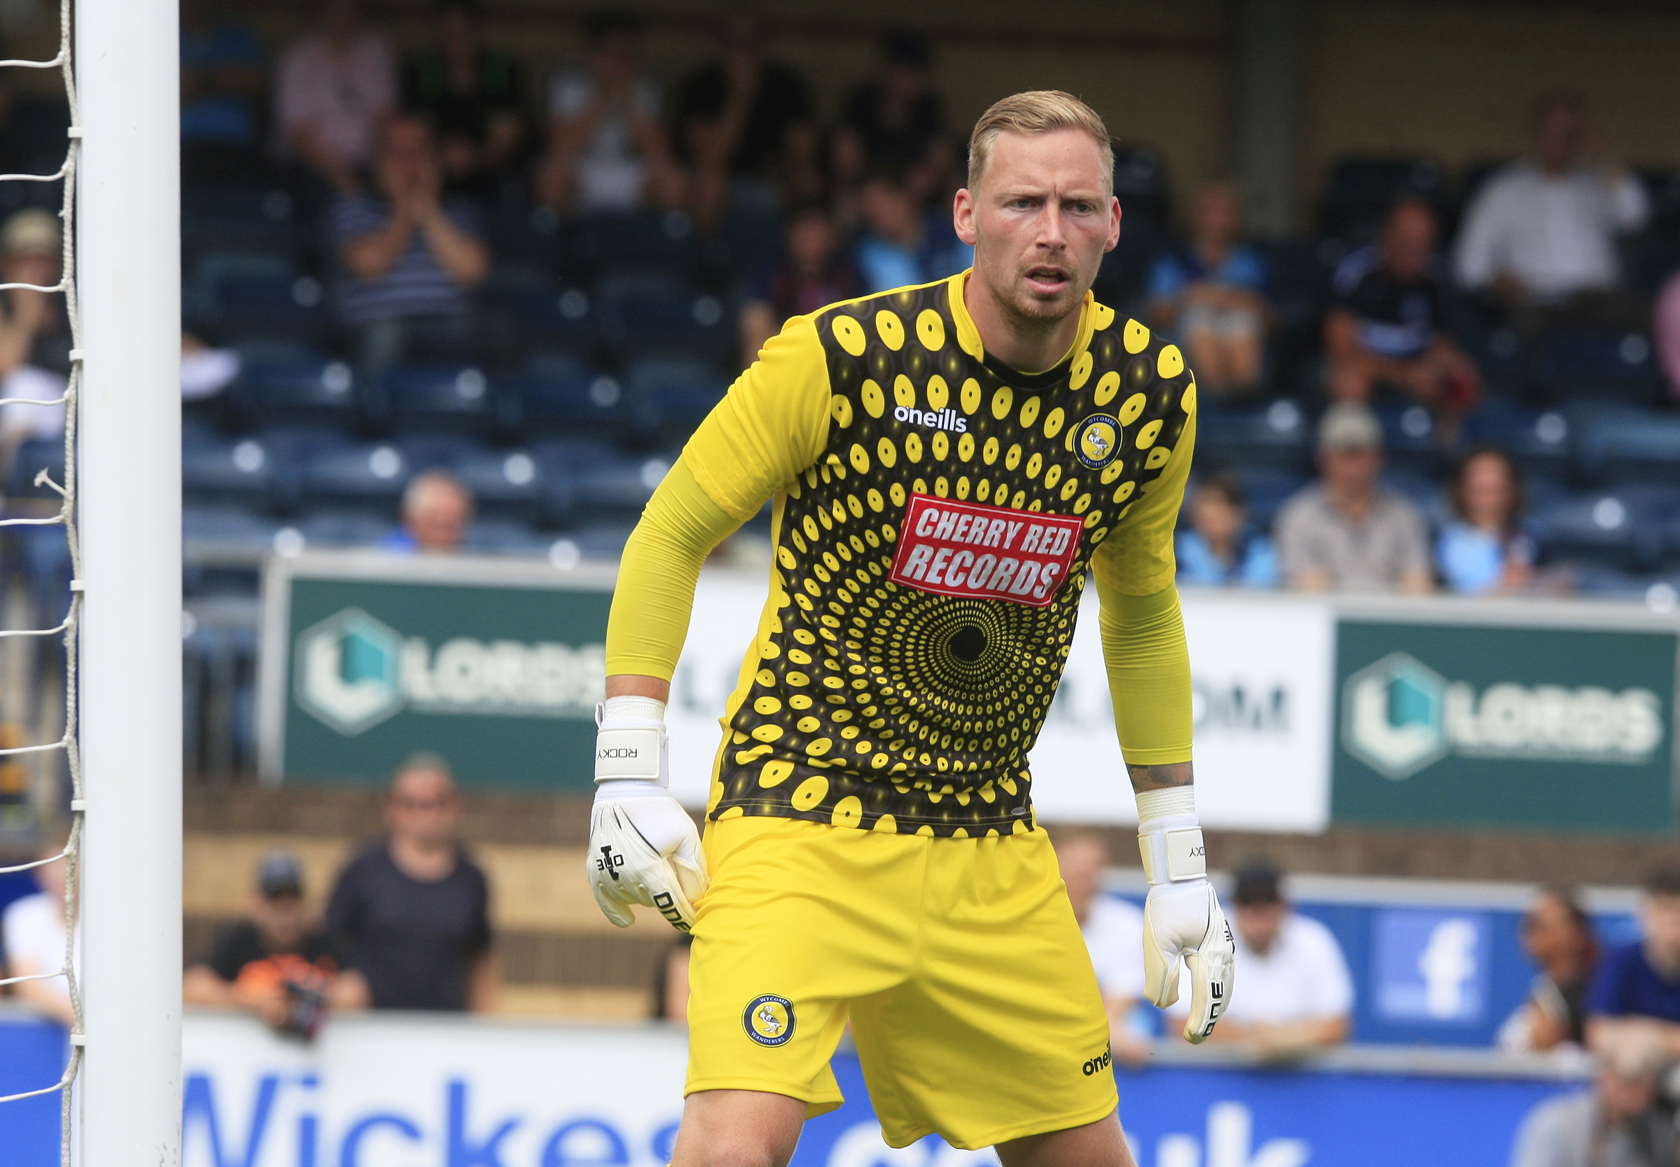 Allsop made a couple of superb saves